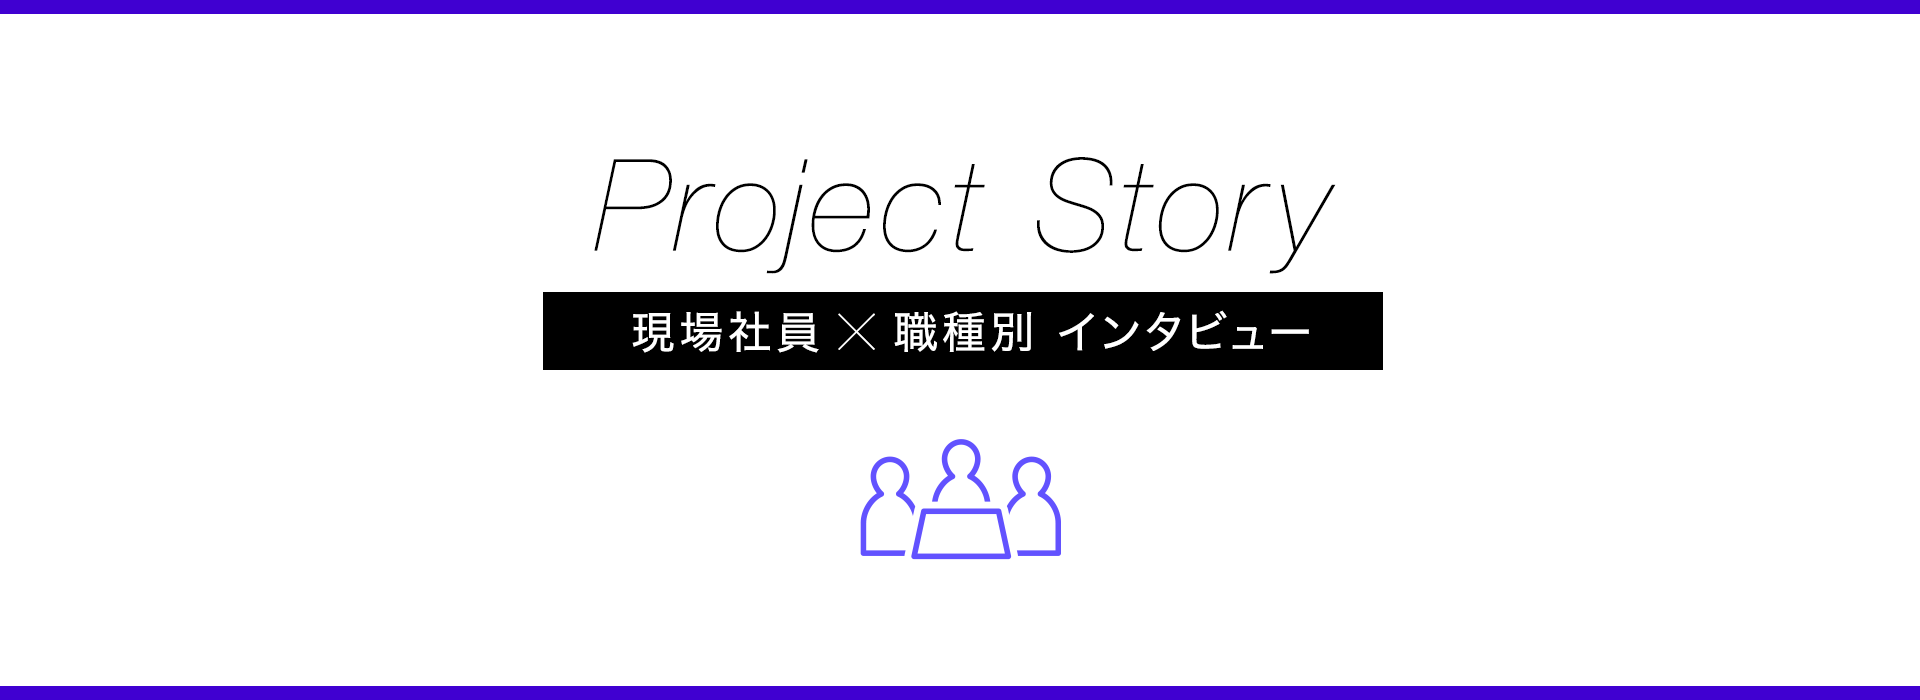 Project Story 現場社員×職種別 インタビュー